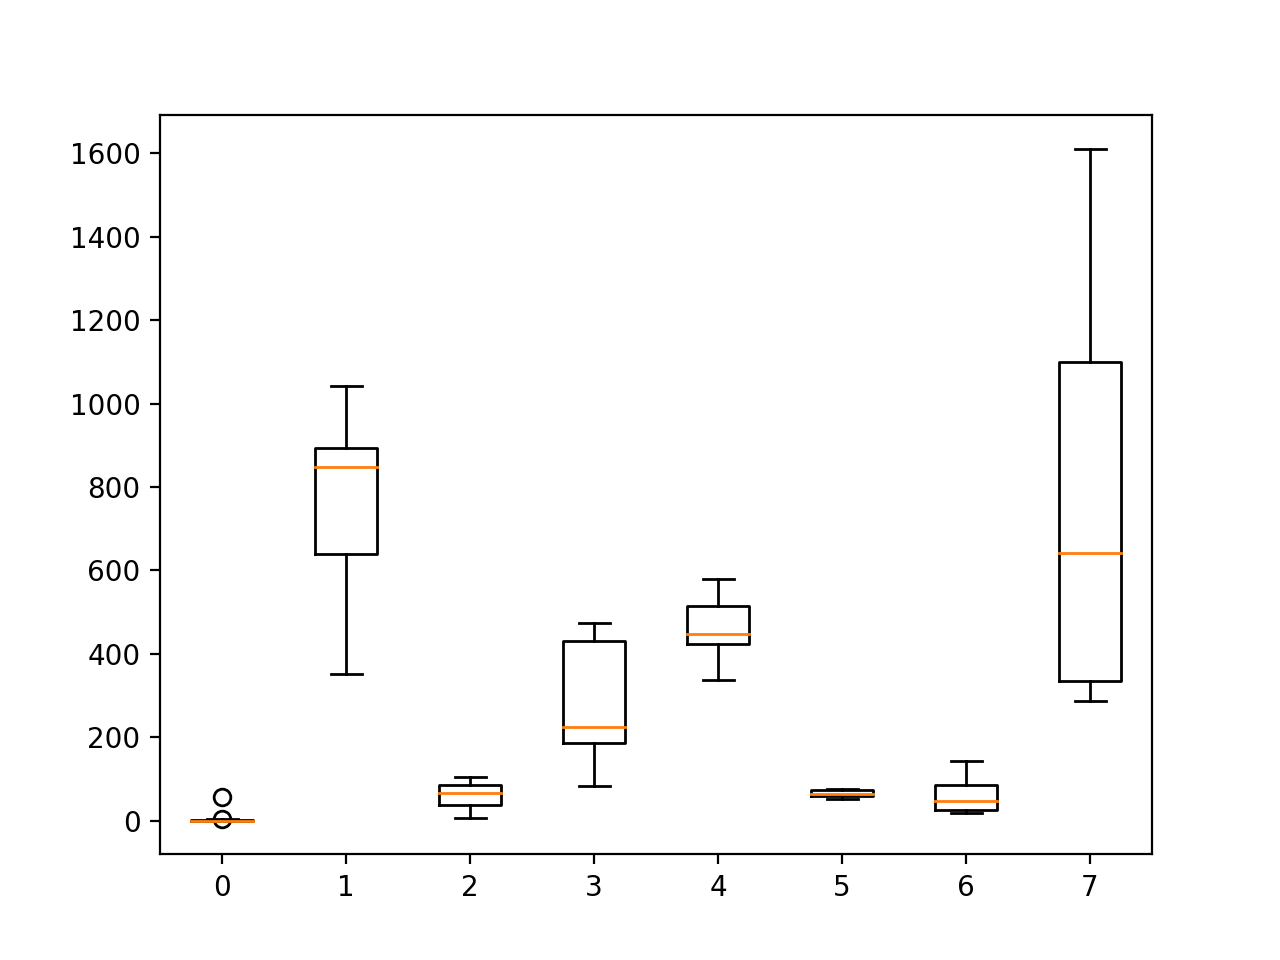 Boxplot of the distribution of activity durations per subject